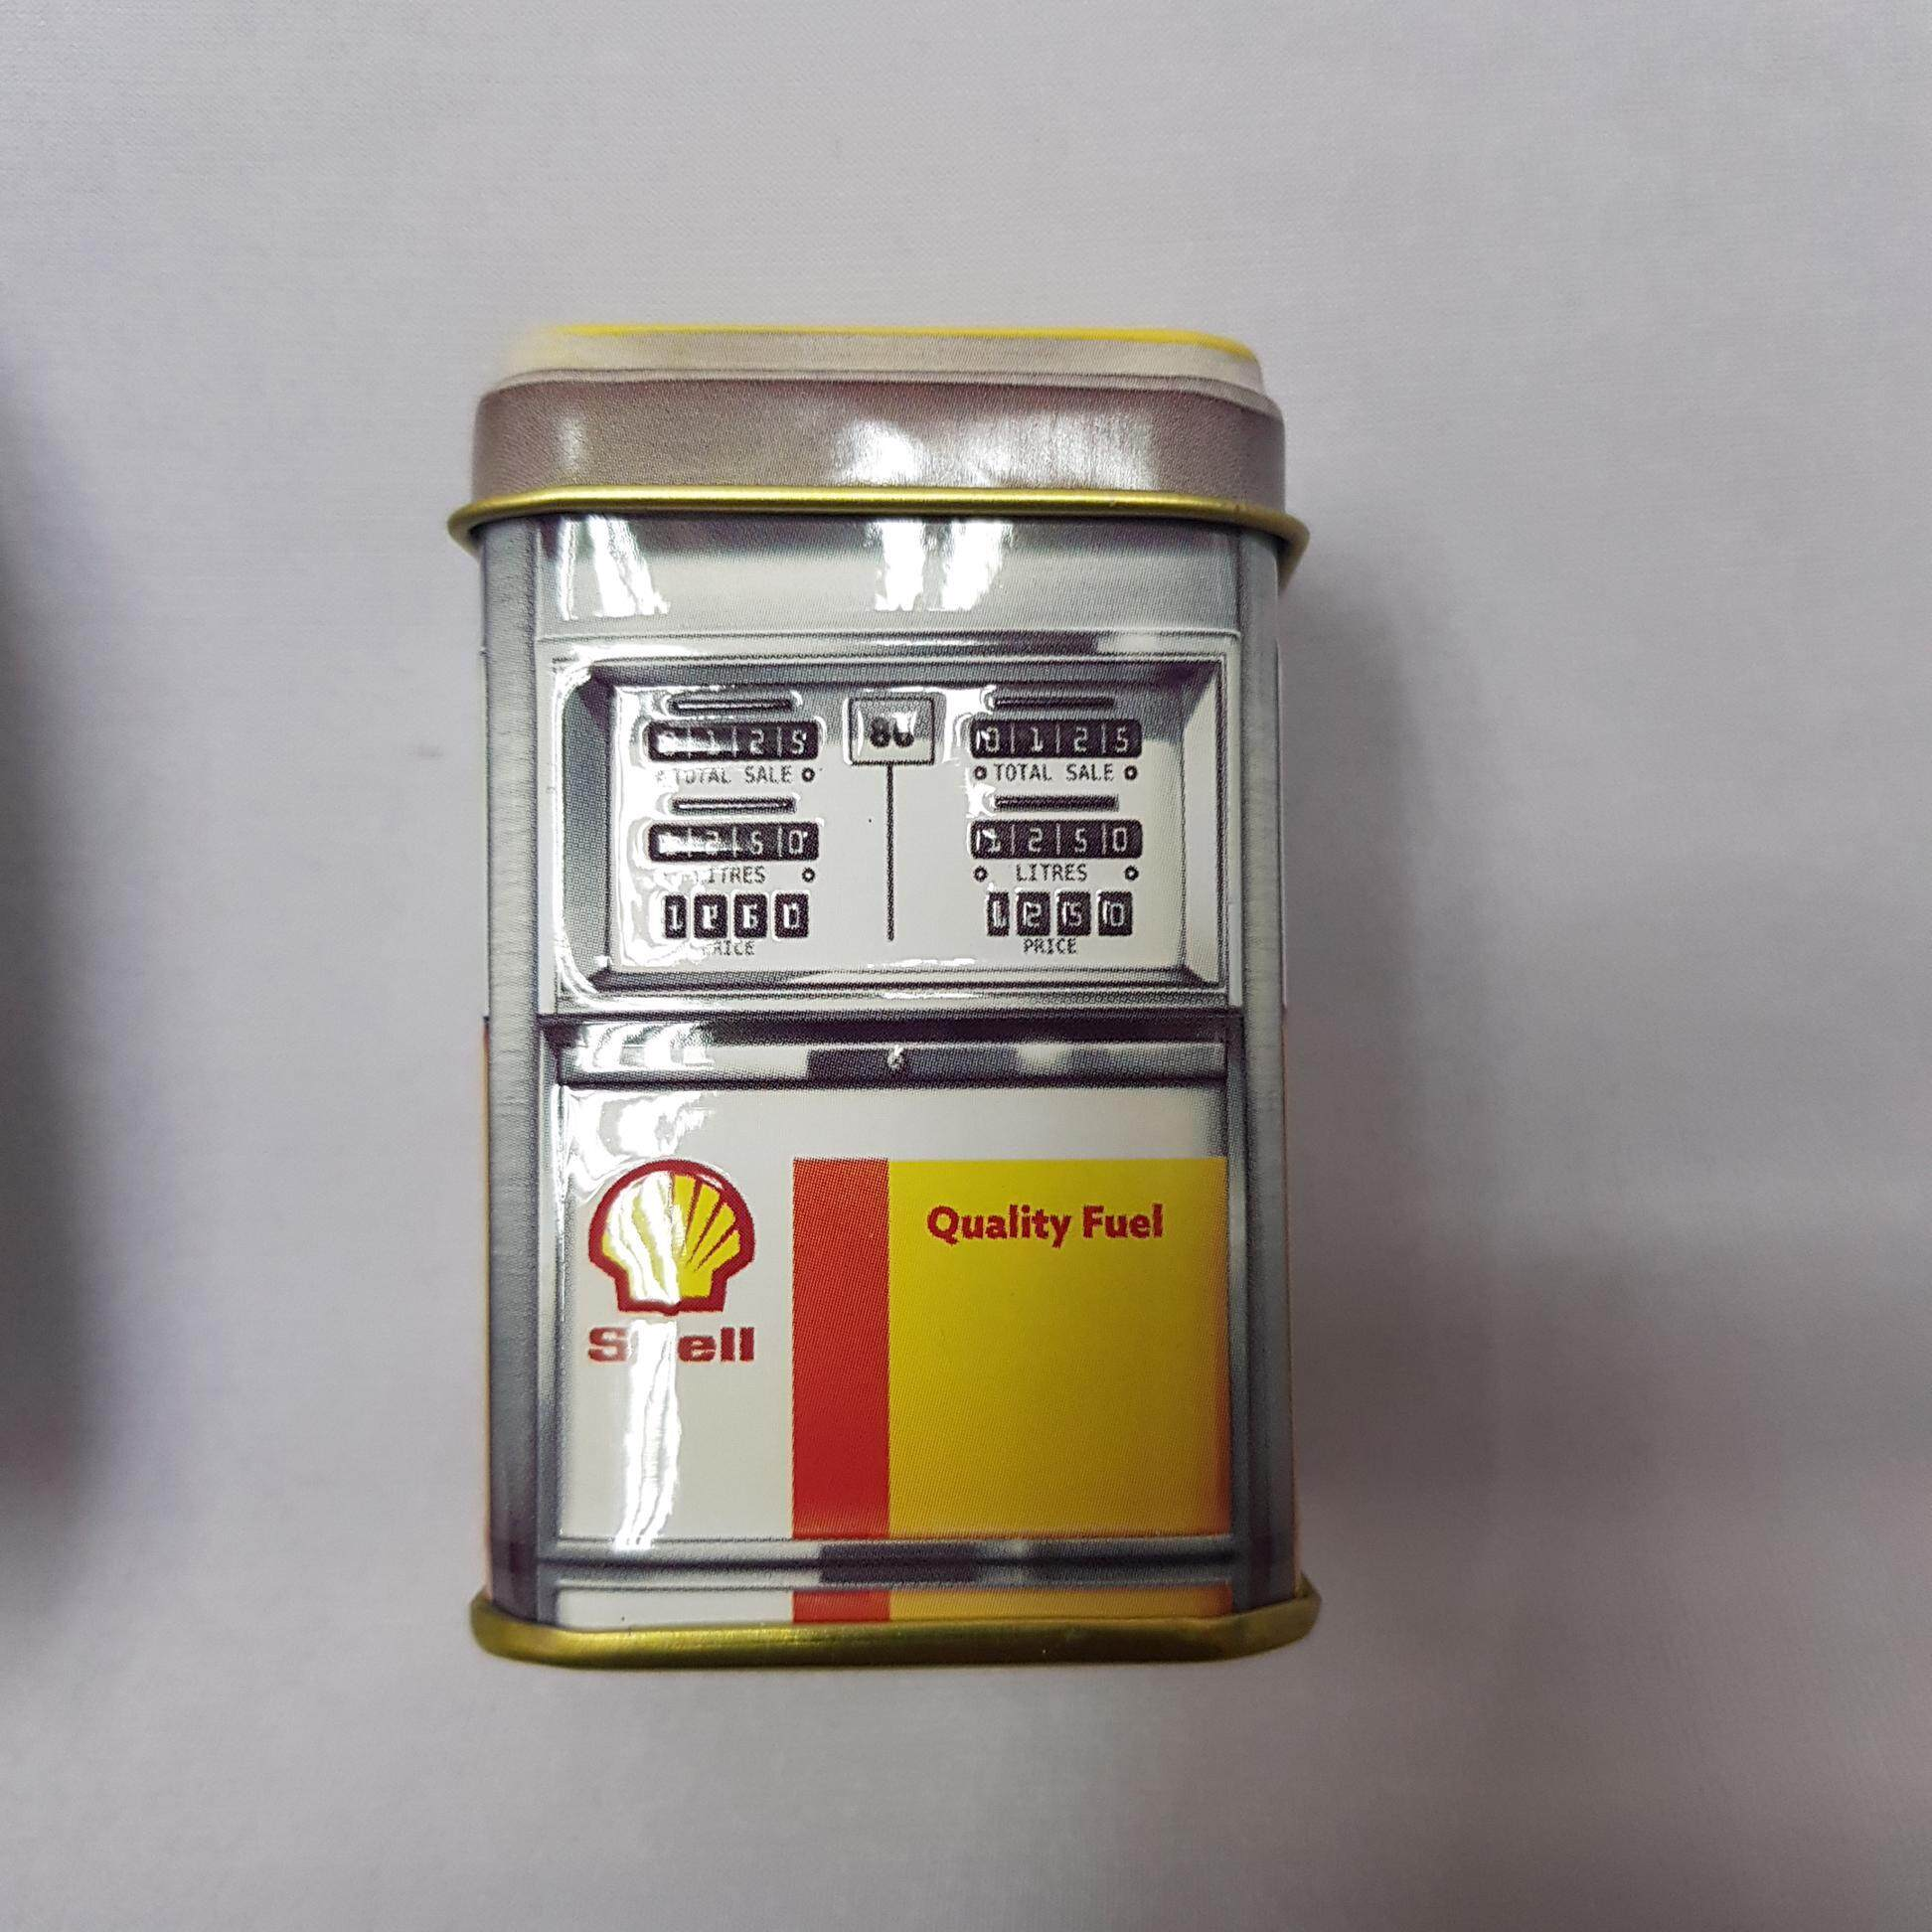 Shell Products For The Best Prices In Malaysia Helix Ultra 5w 40 Api Sn Cf Fully Synthetic Oil Pelumas Oli Mesin Mobil 4 Liter Limited Edition Heritage Canister Select Mini Tin 1980s With Free Pecten